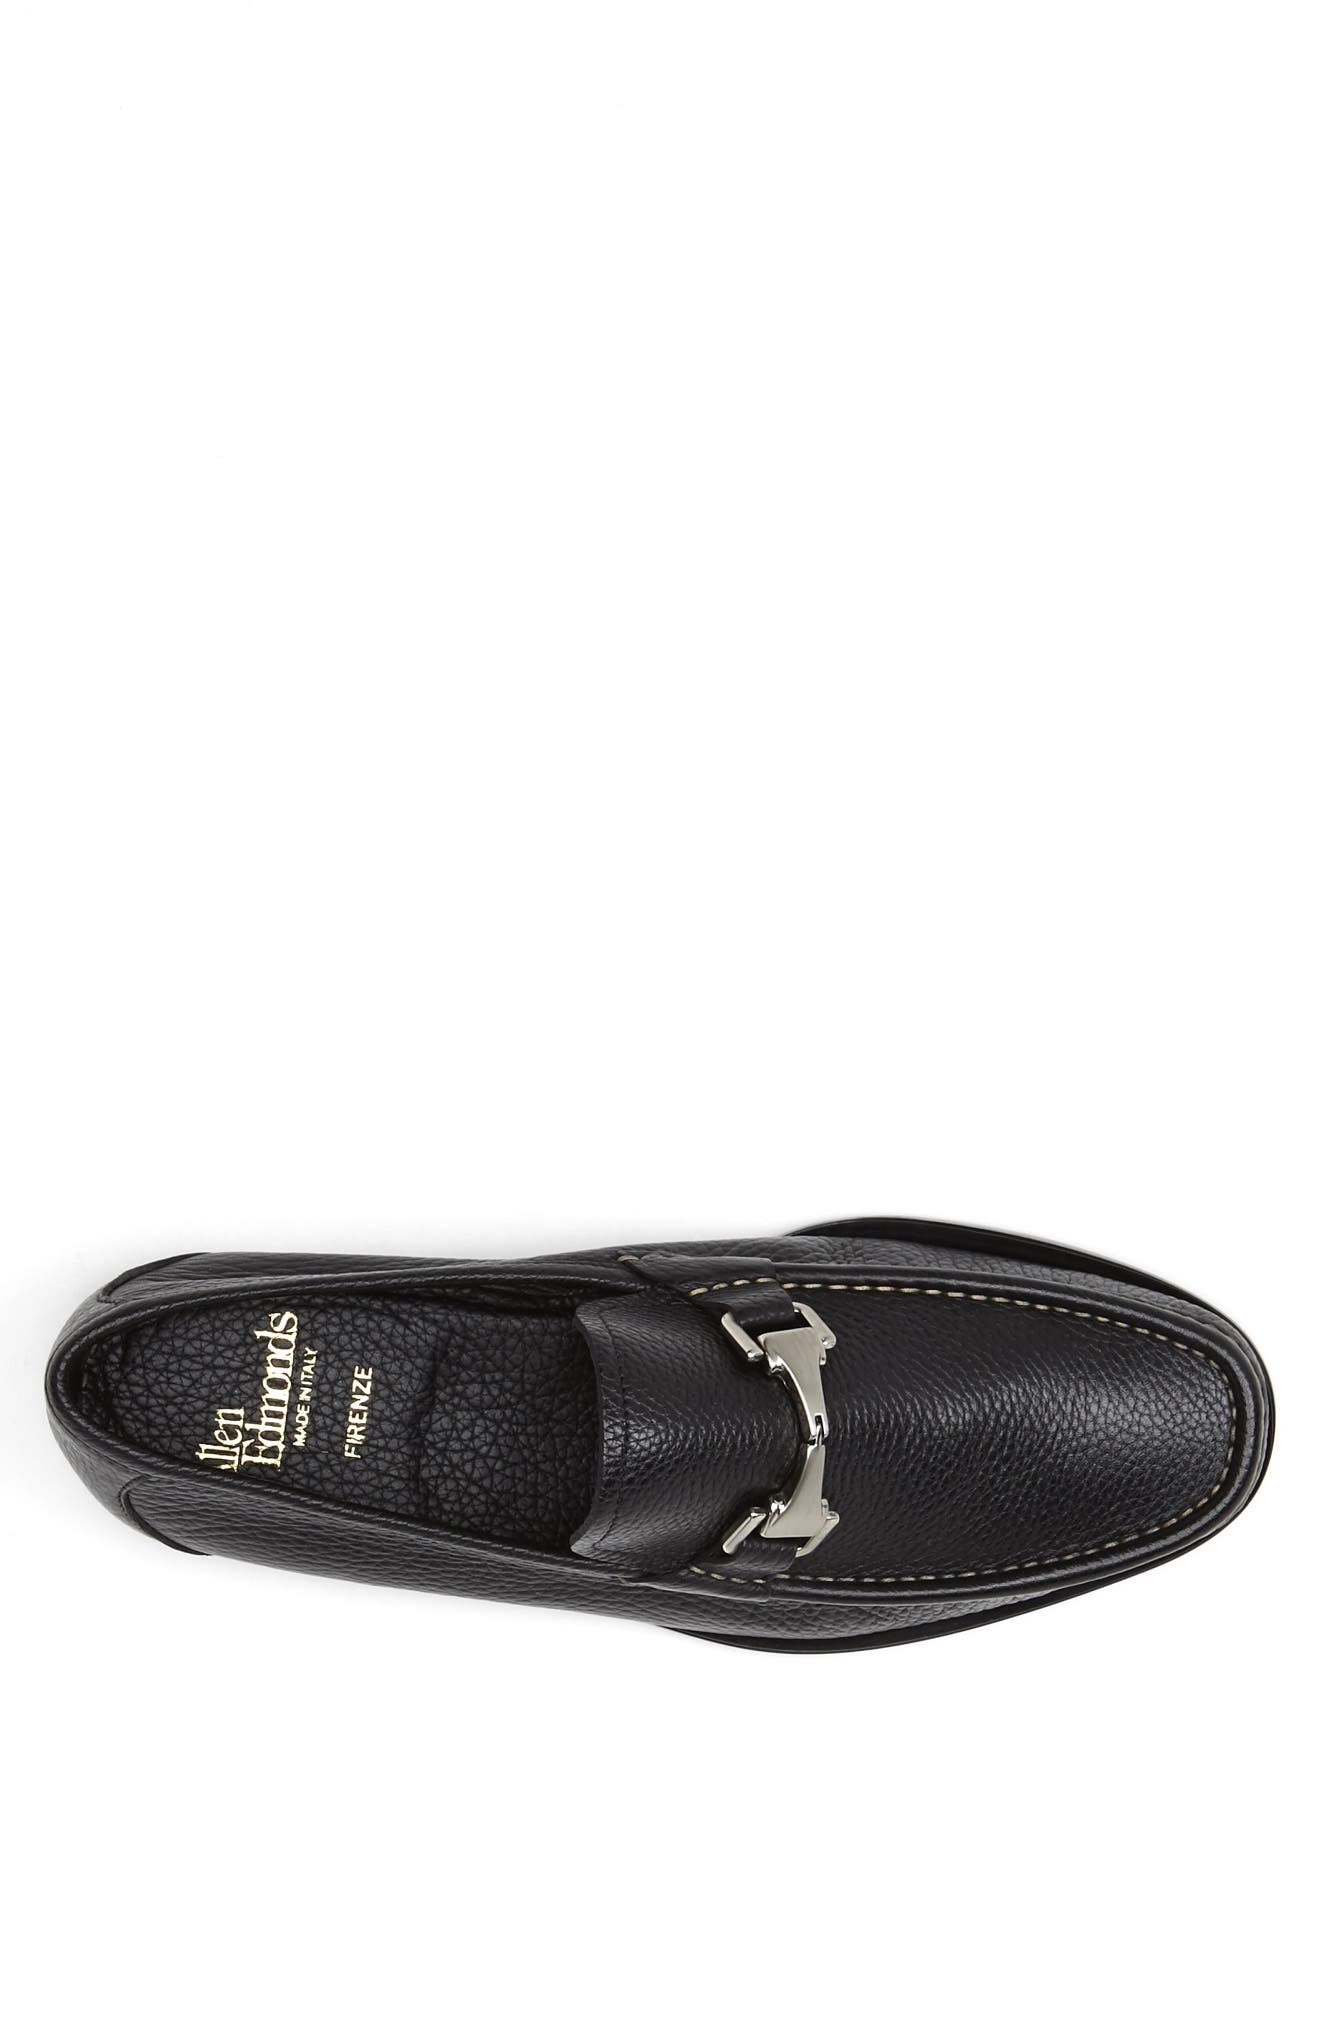 'Firenze' Bit Loafer,                             Alternate thumbnail 4, color,                             001